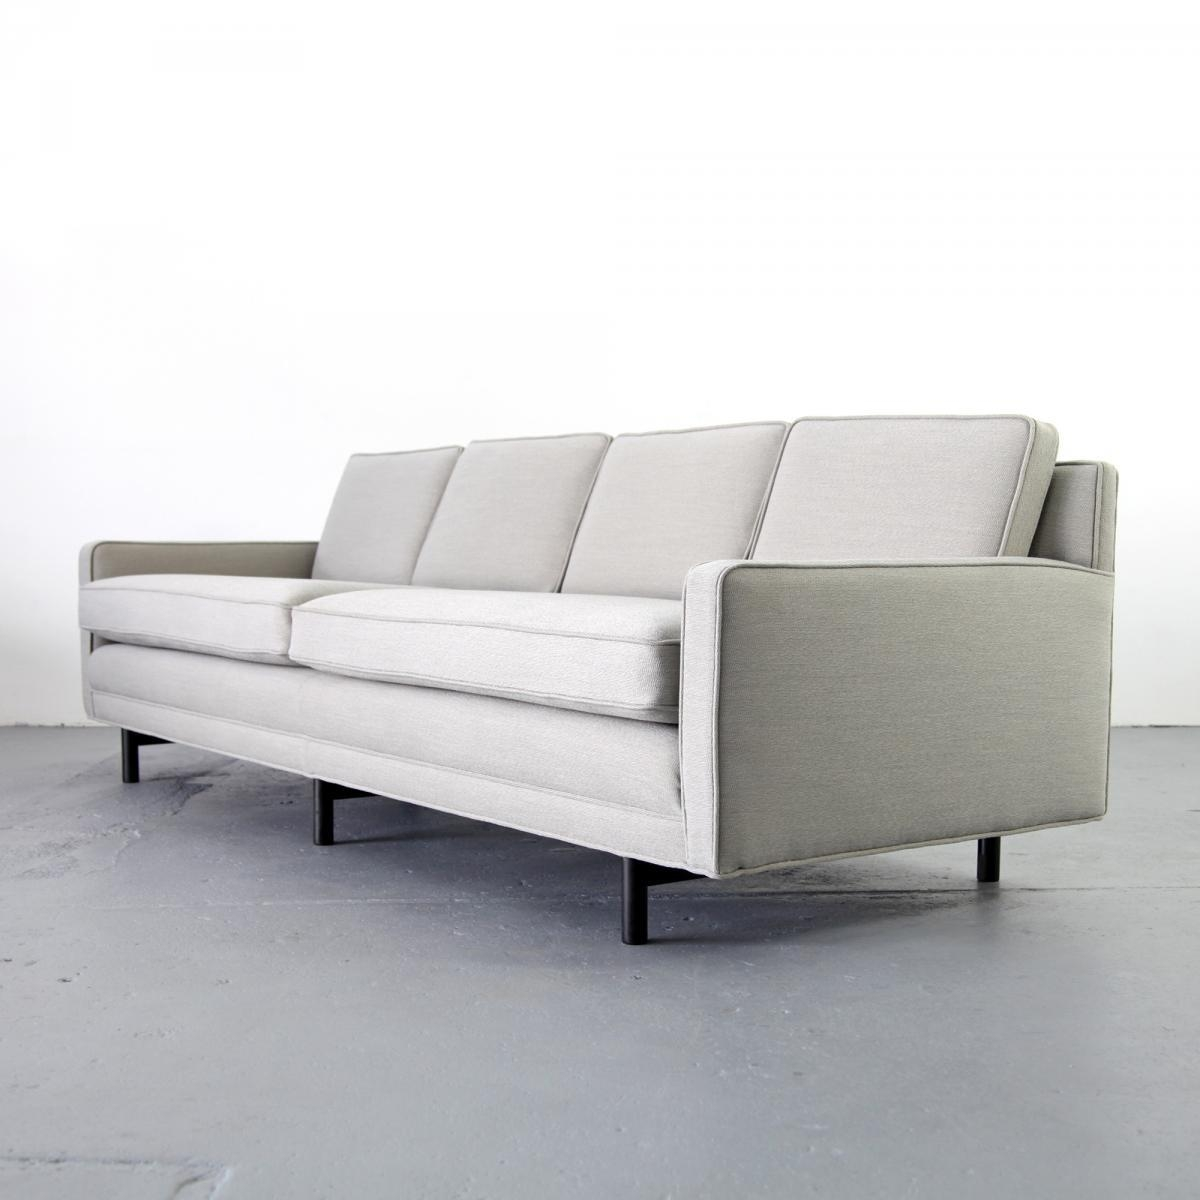 4-Seater Sofapaul Mccobb For Directional For Sale At Pamono with Four Seater Sofas